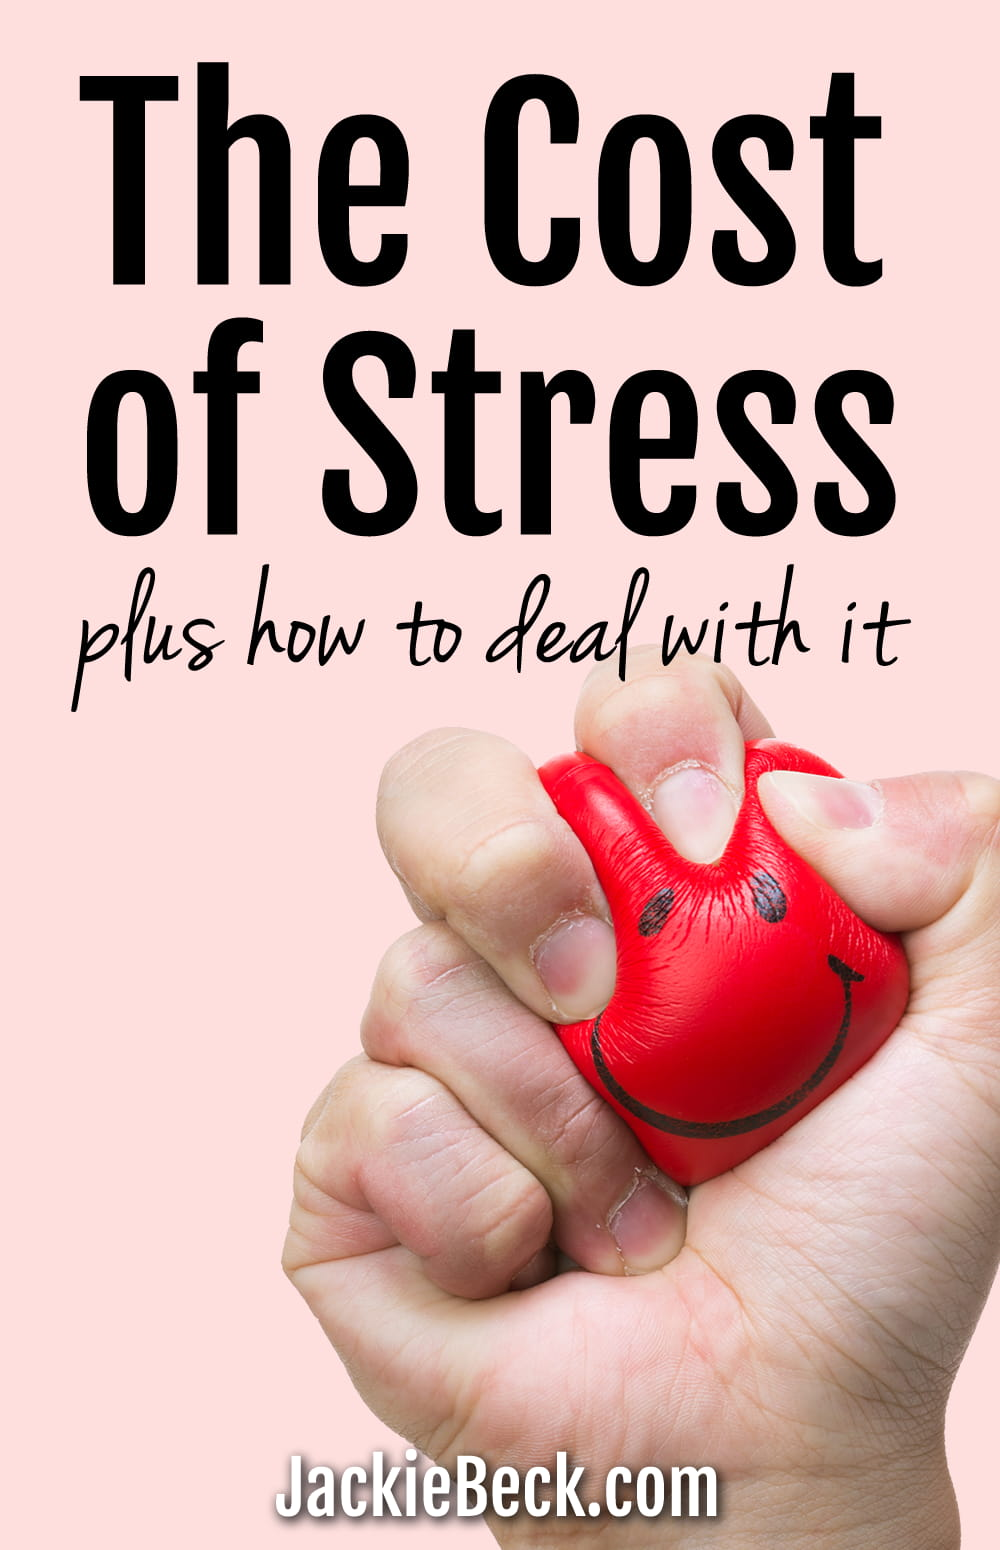 The cost of stress, plus how to deal with it